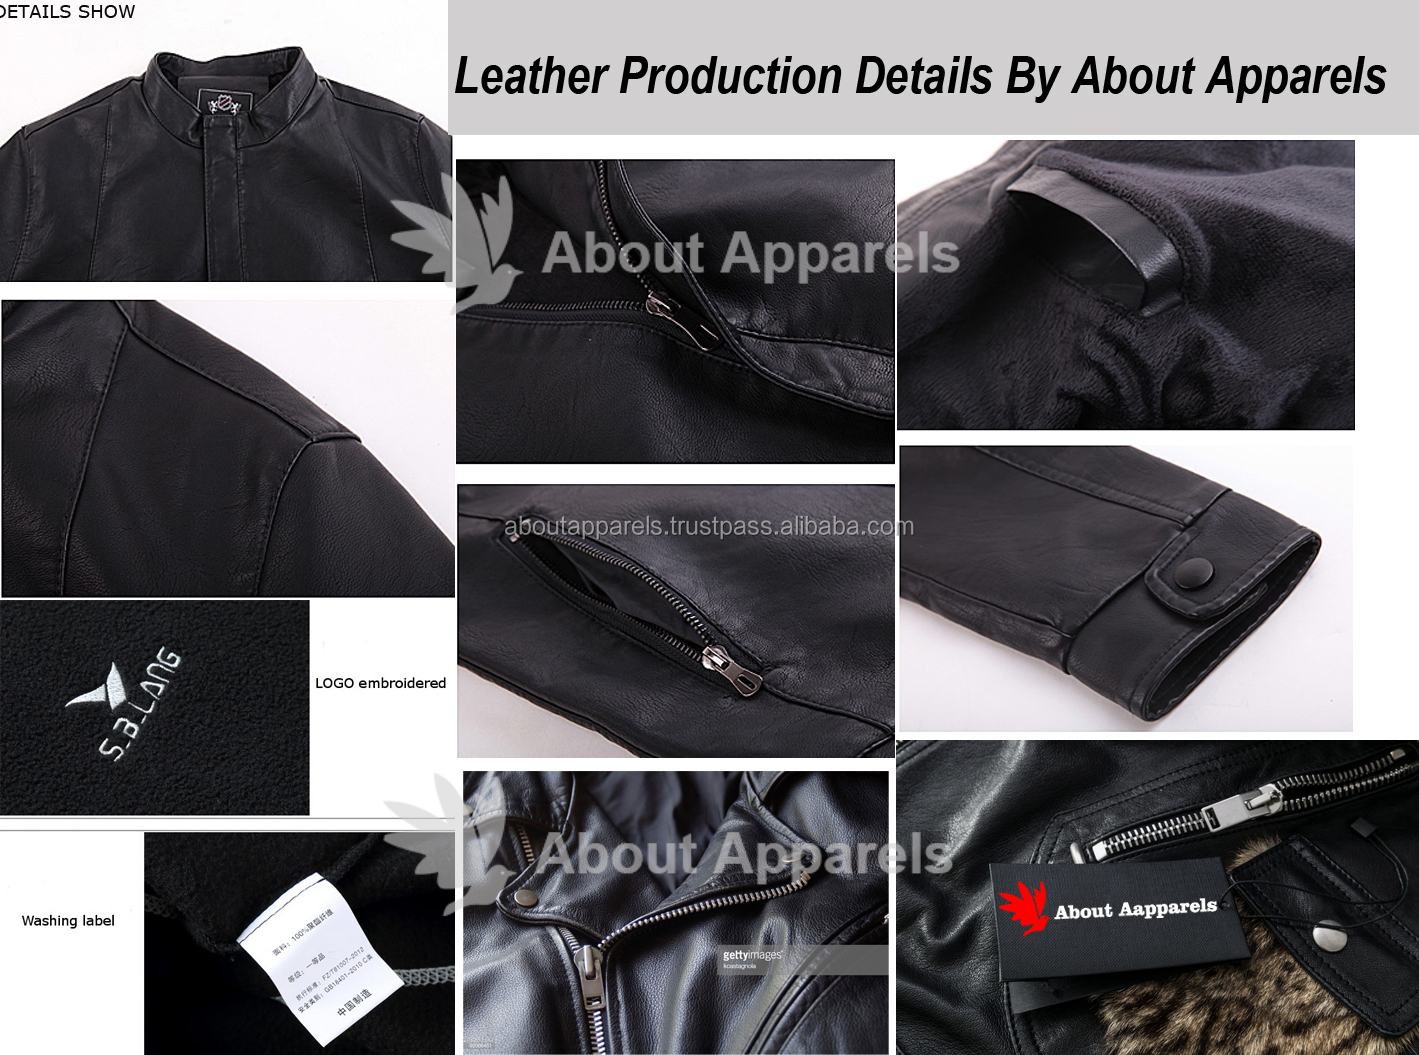 2015 New Summer Design Black Rare Leather Tight Look Dress Of Clothing Manufacture,Black Studded Faux Leather Dresses,